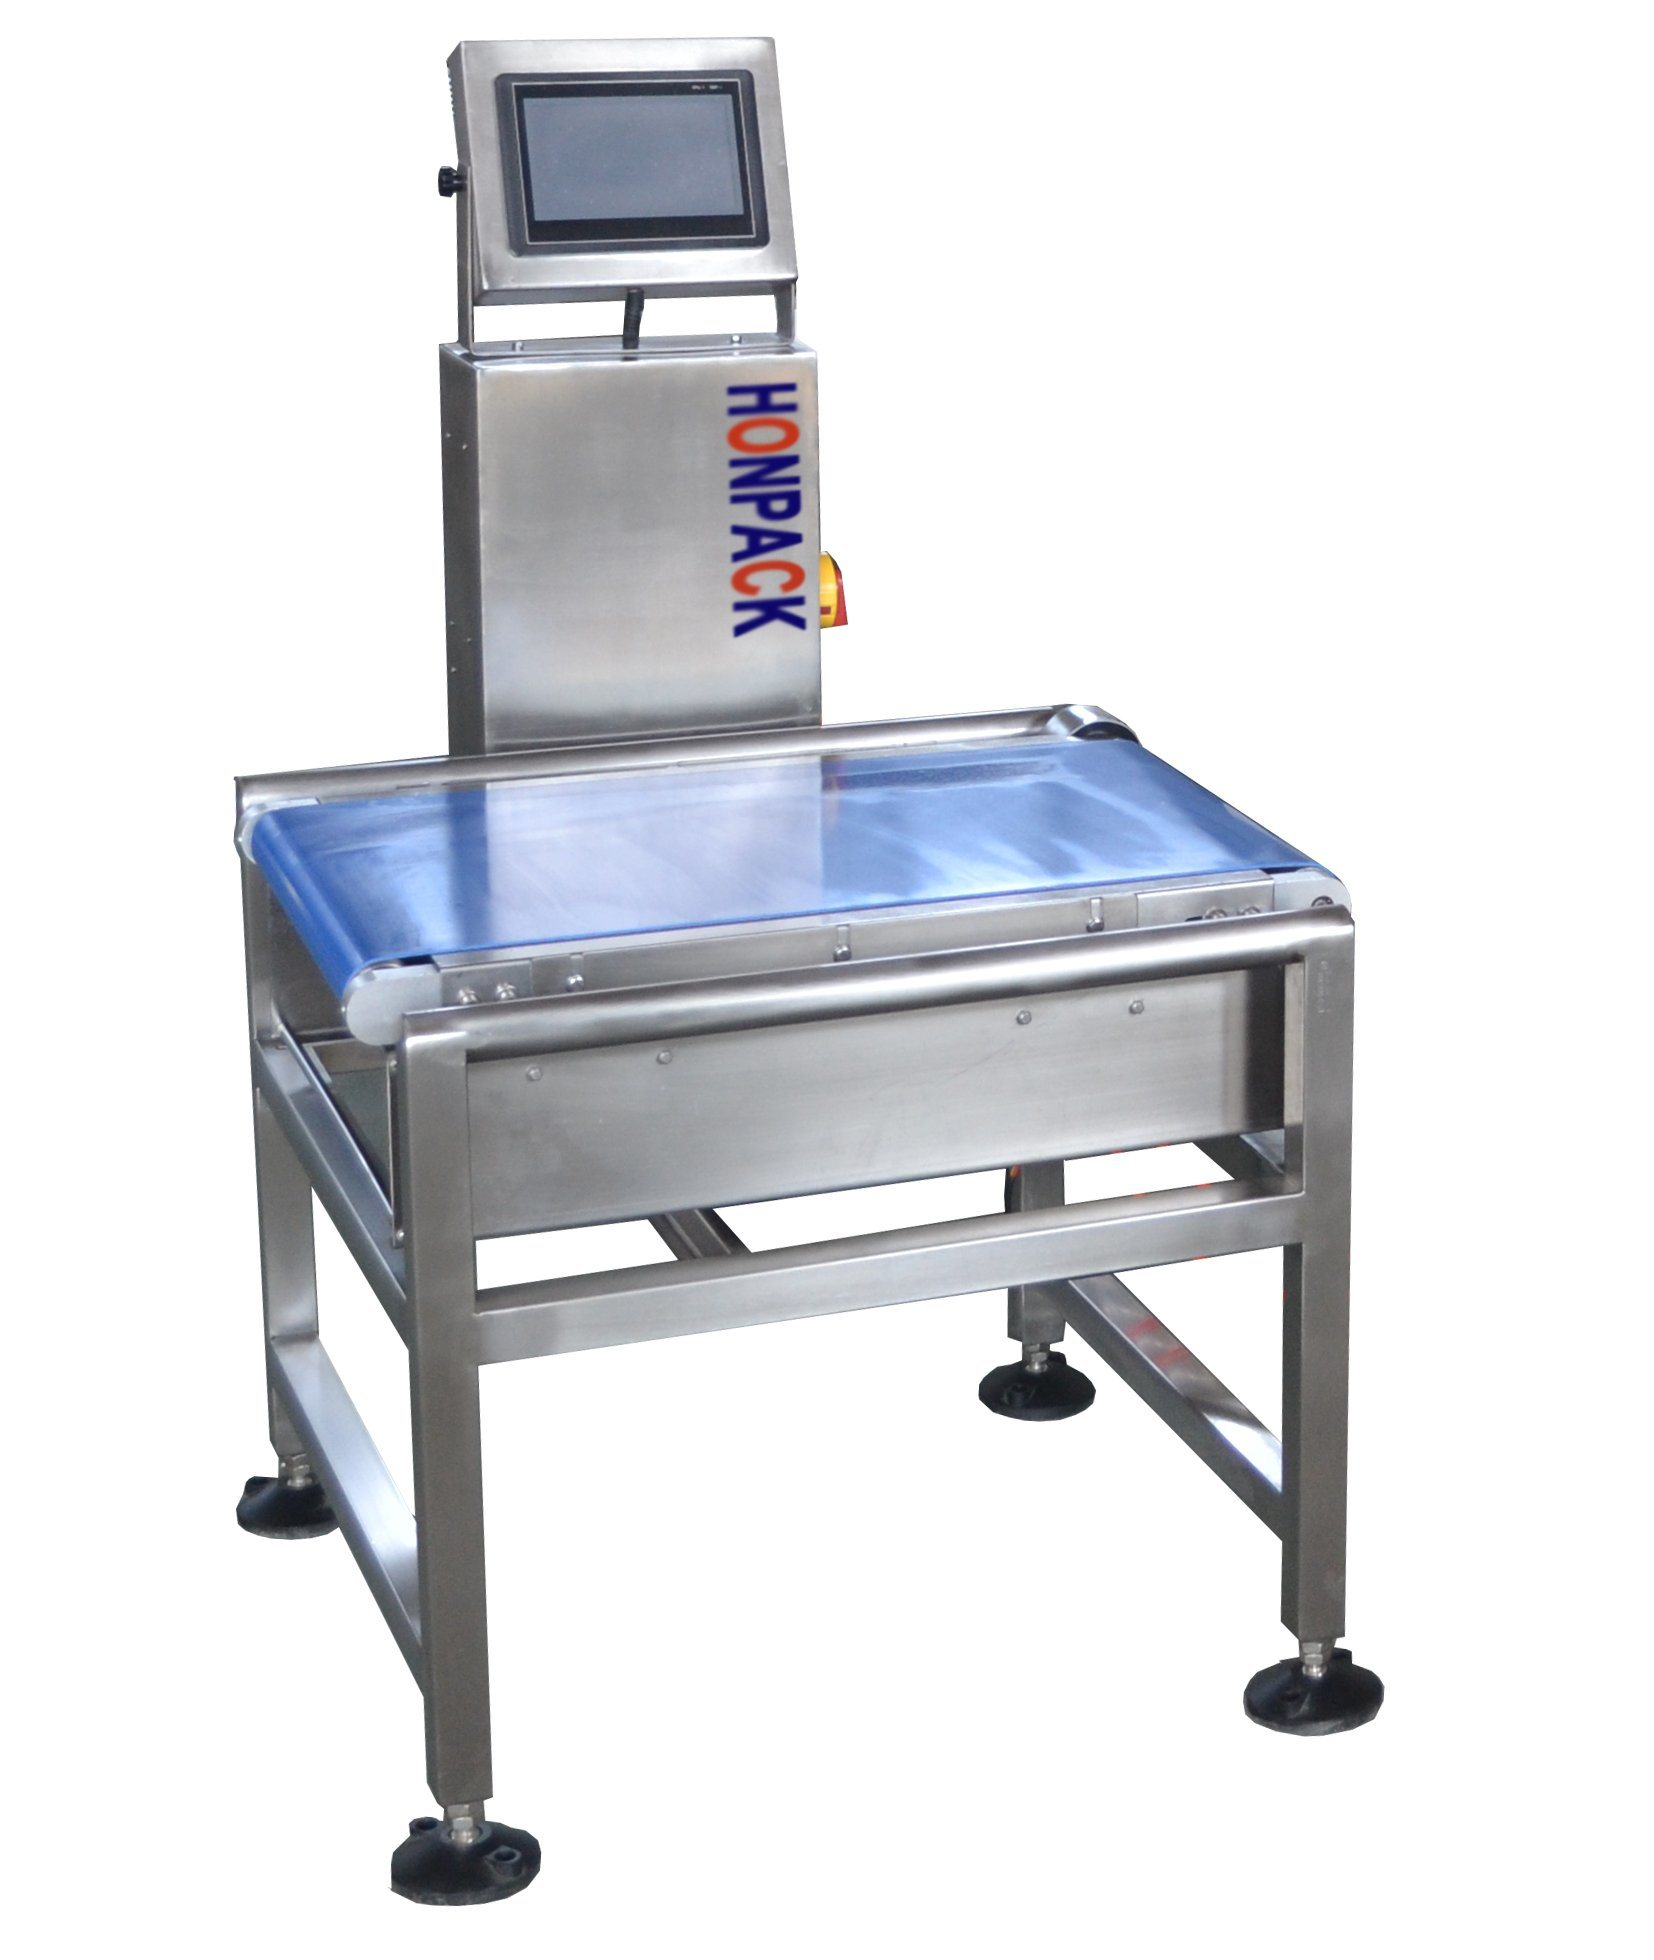 Checkweigher Hcw7040